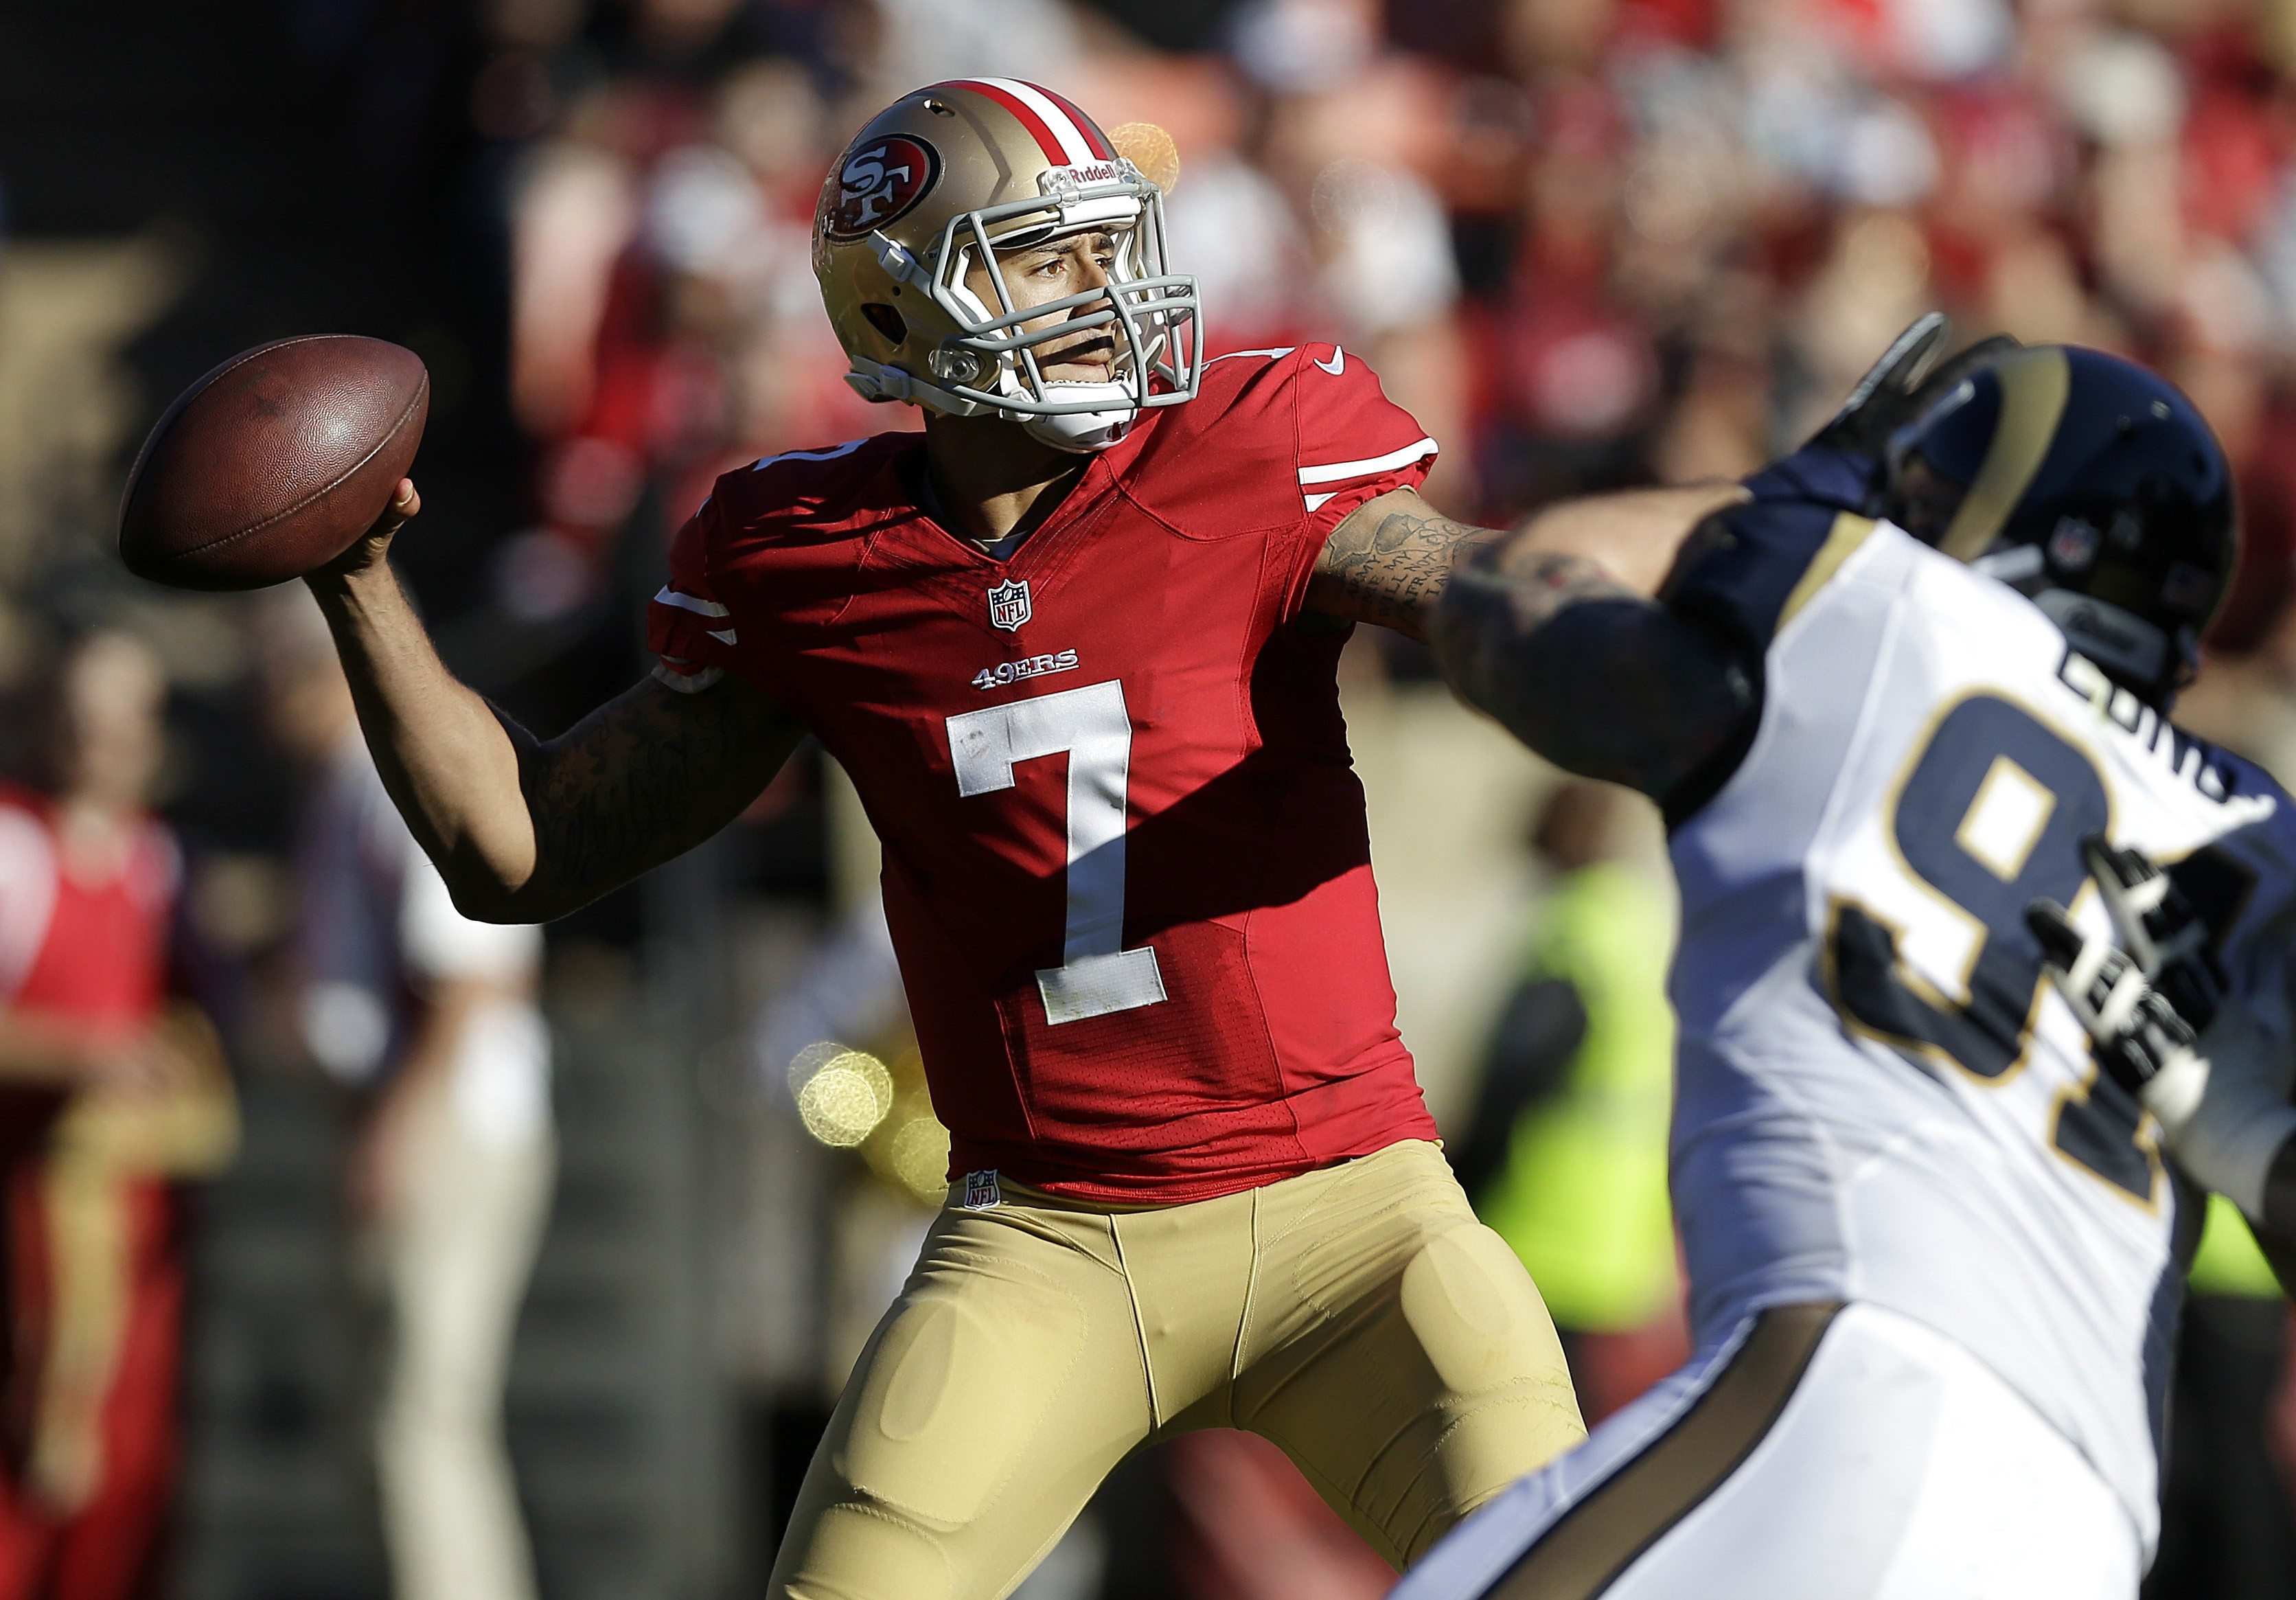 AP Photo/Marcio Jose SanchezSan Francisco 49ers quarterback Colin Kaepernick (7) passes as St. Louis Rams defensive end Chris Long (91) applies pressure during the second quarter of an NFL football game in San Francisco